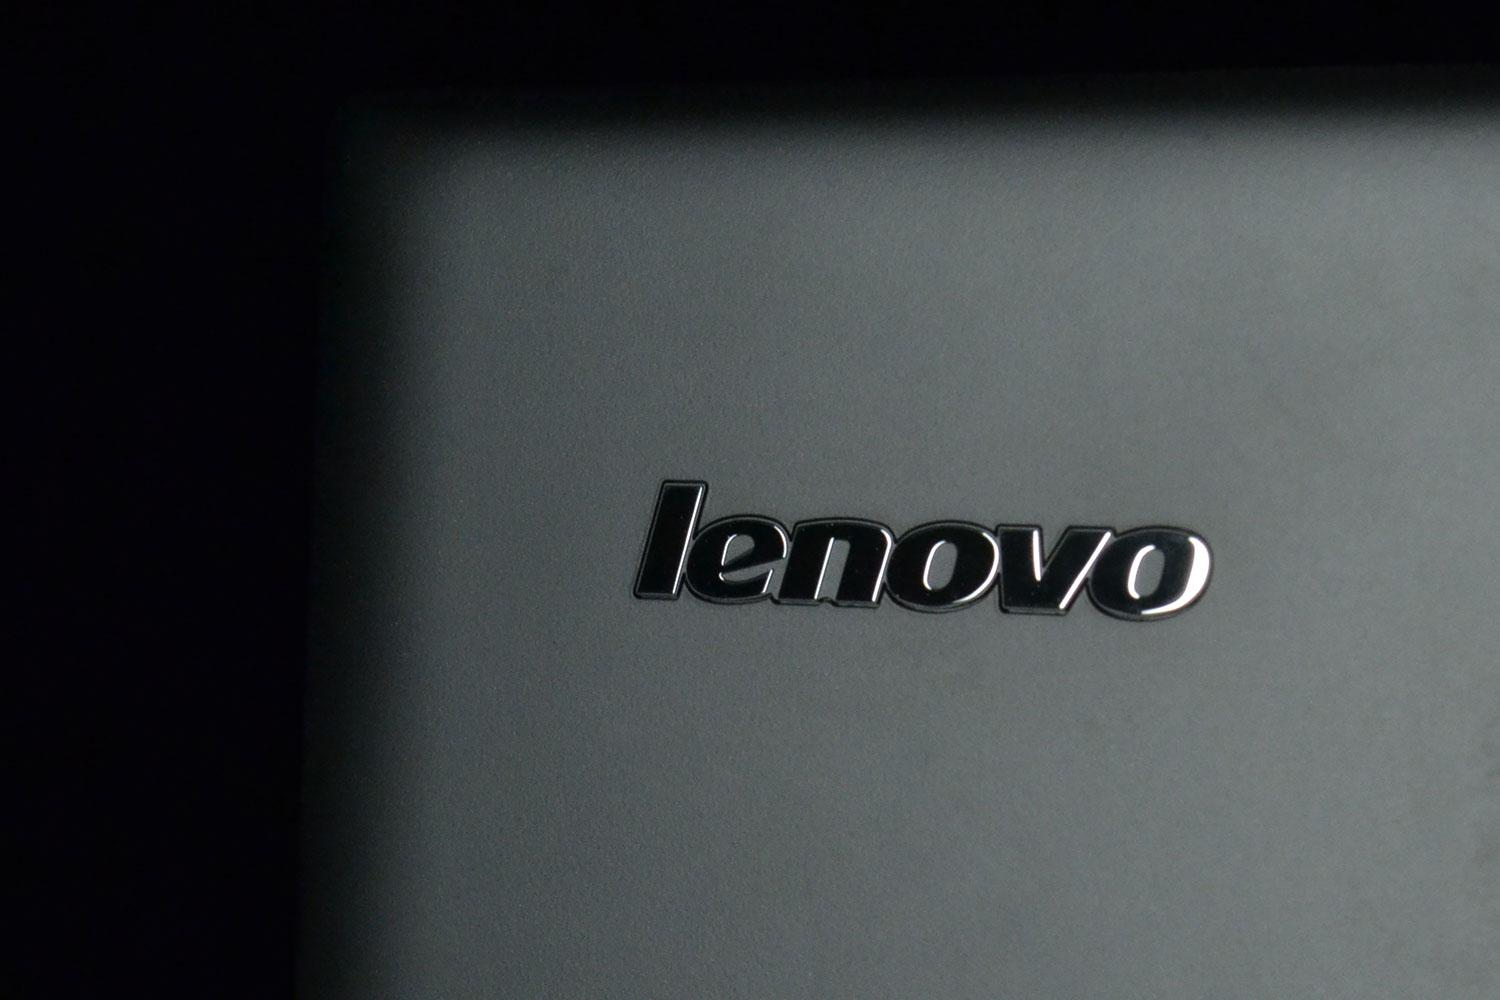 lenovo hp other pc makers grow in third quarter of 2014